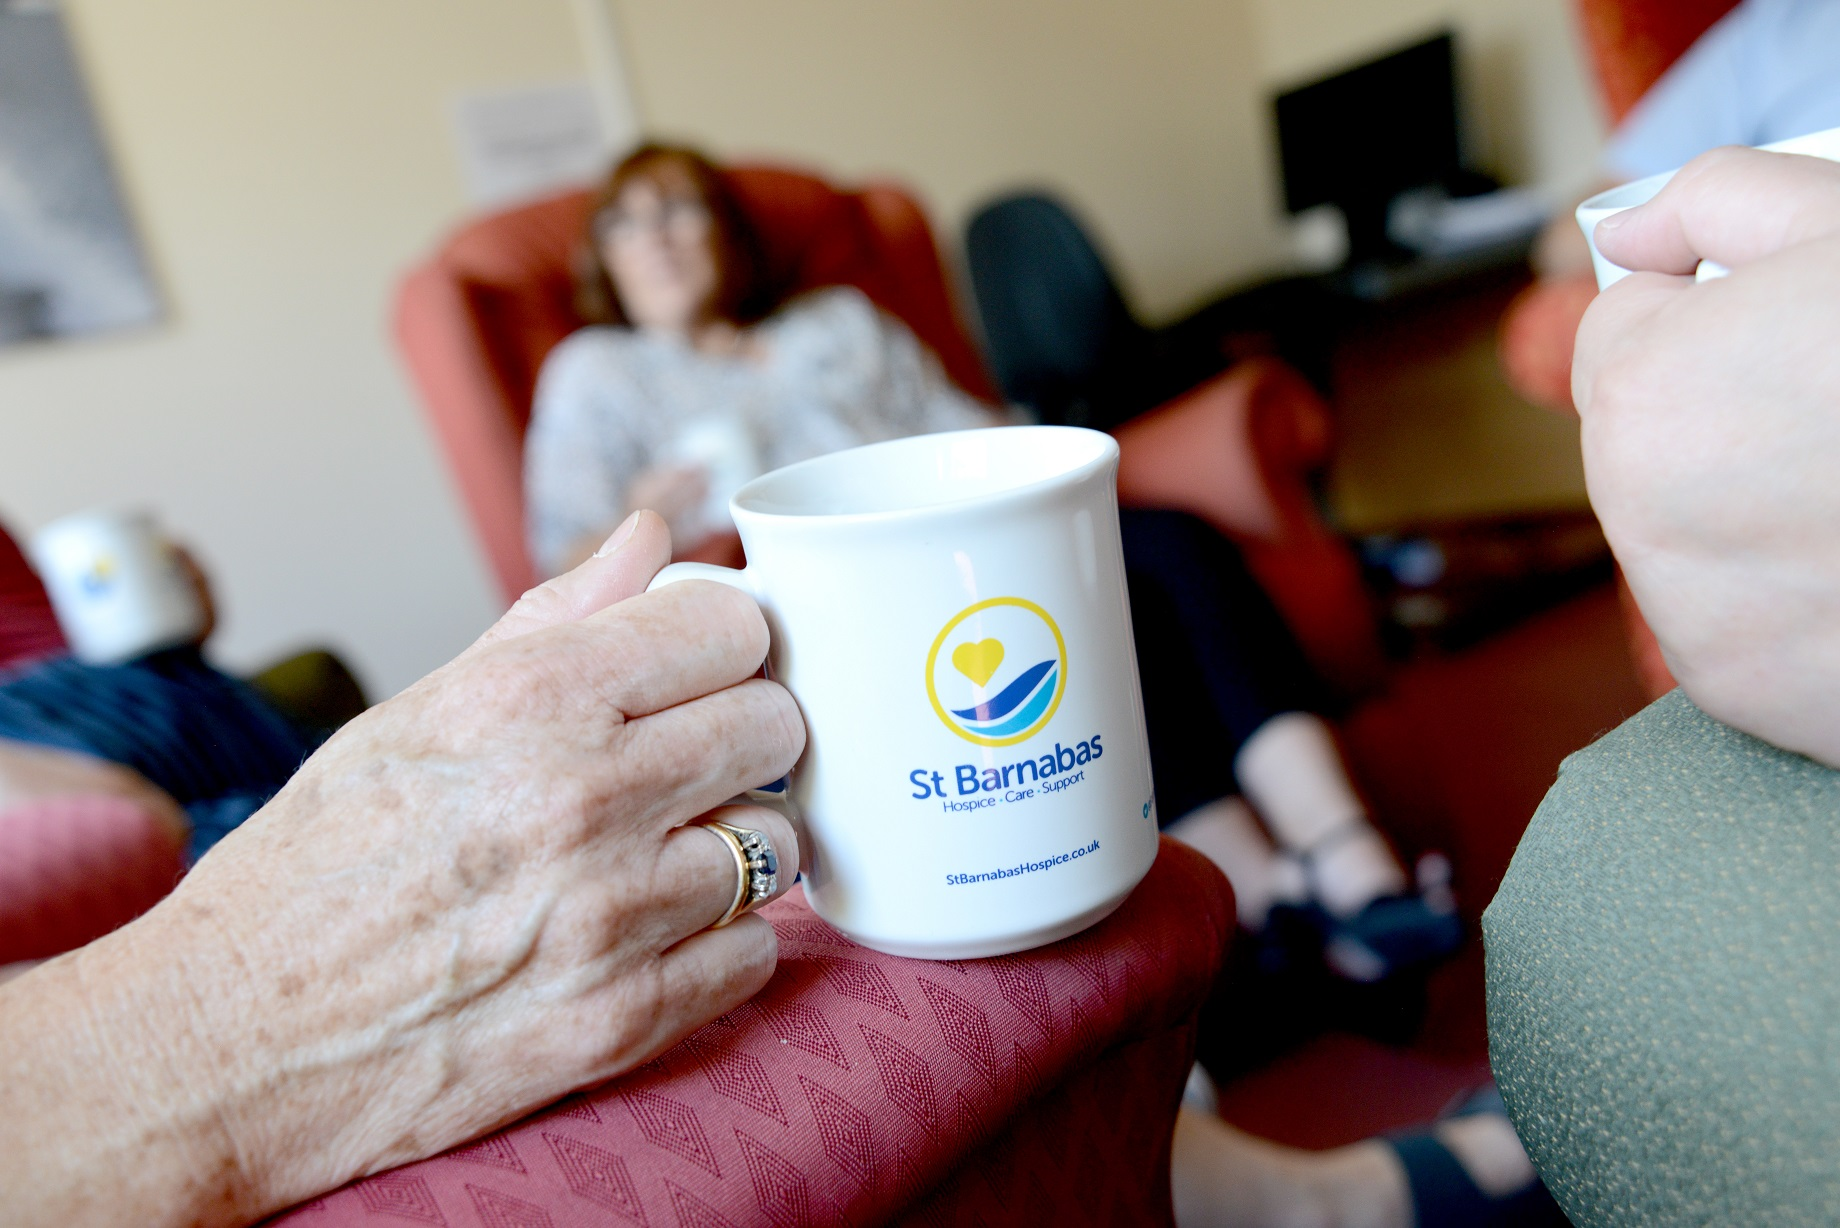 St Barnabas counselling session